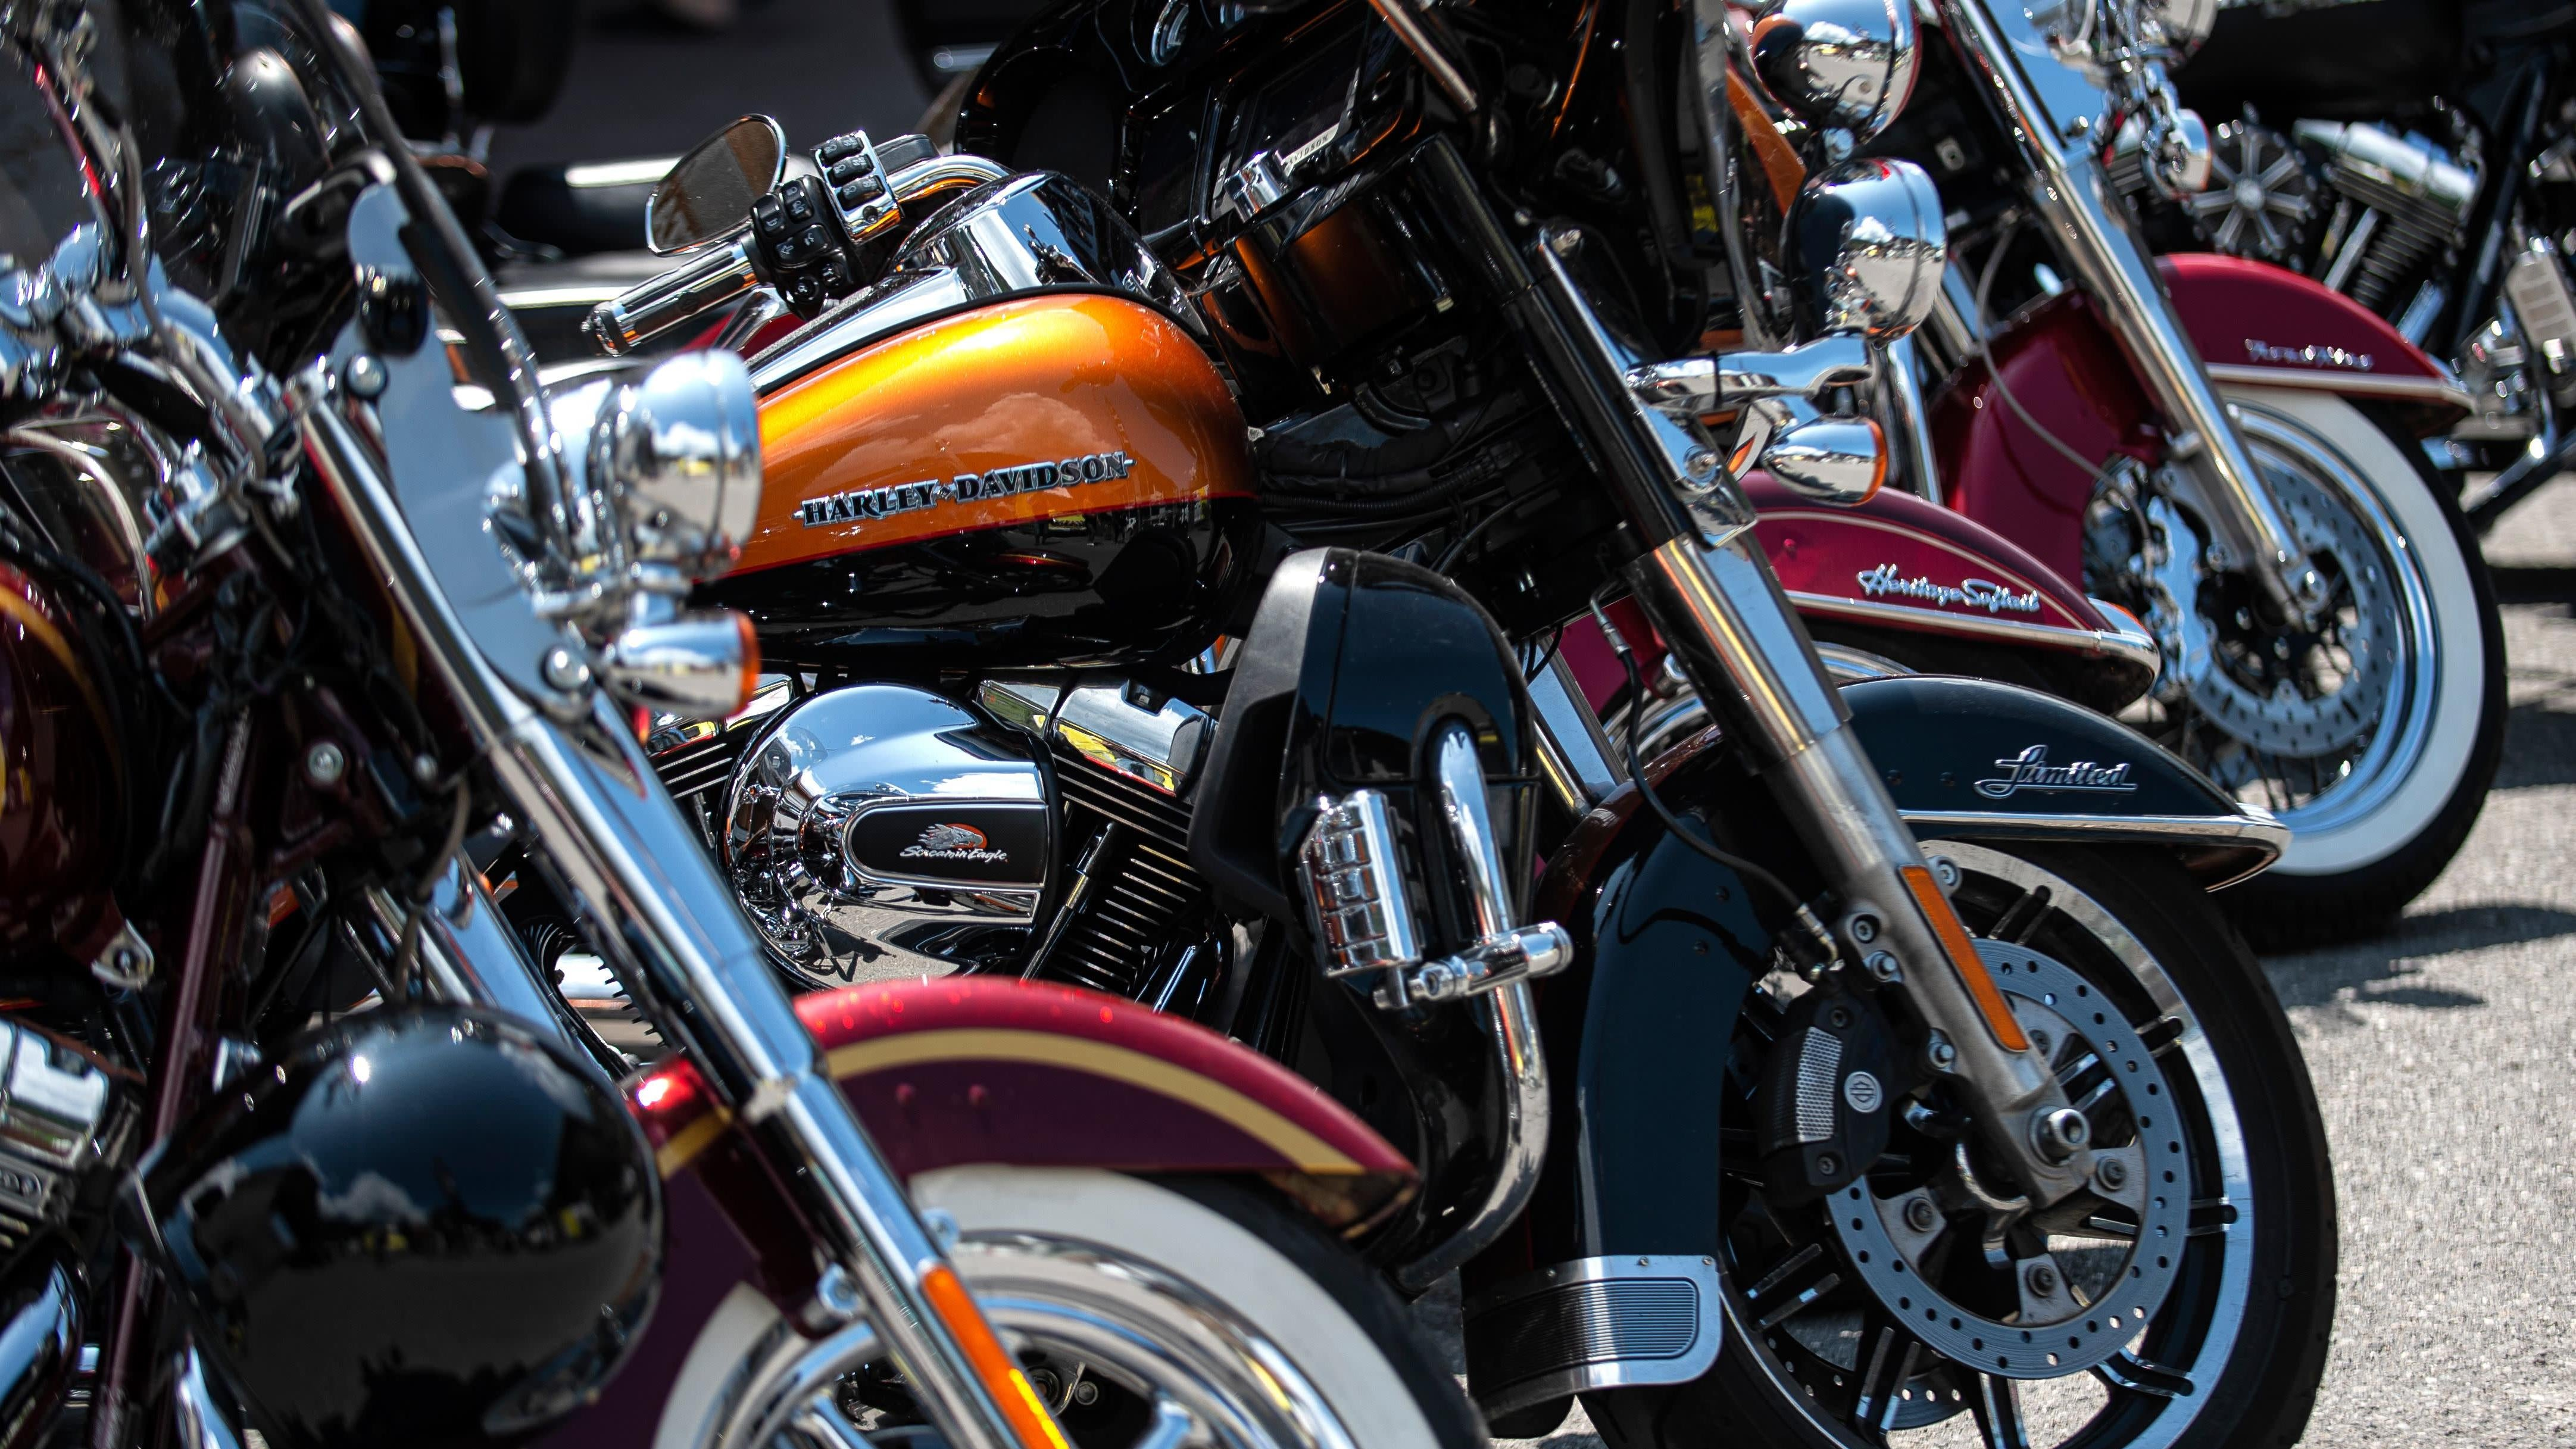 Report: Harley-Davidson Wants To Trade On Exclusivity Again